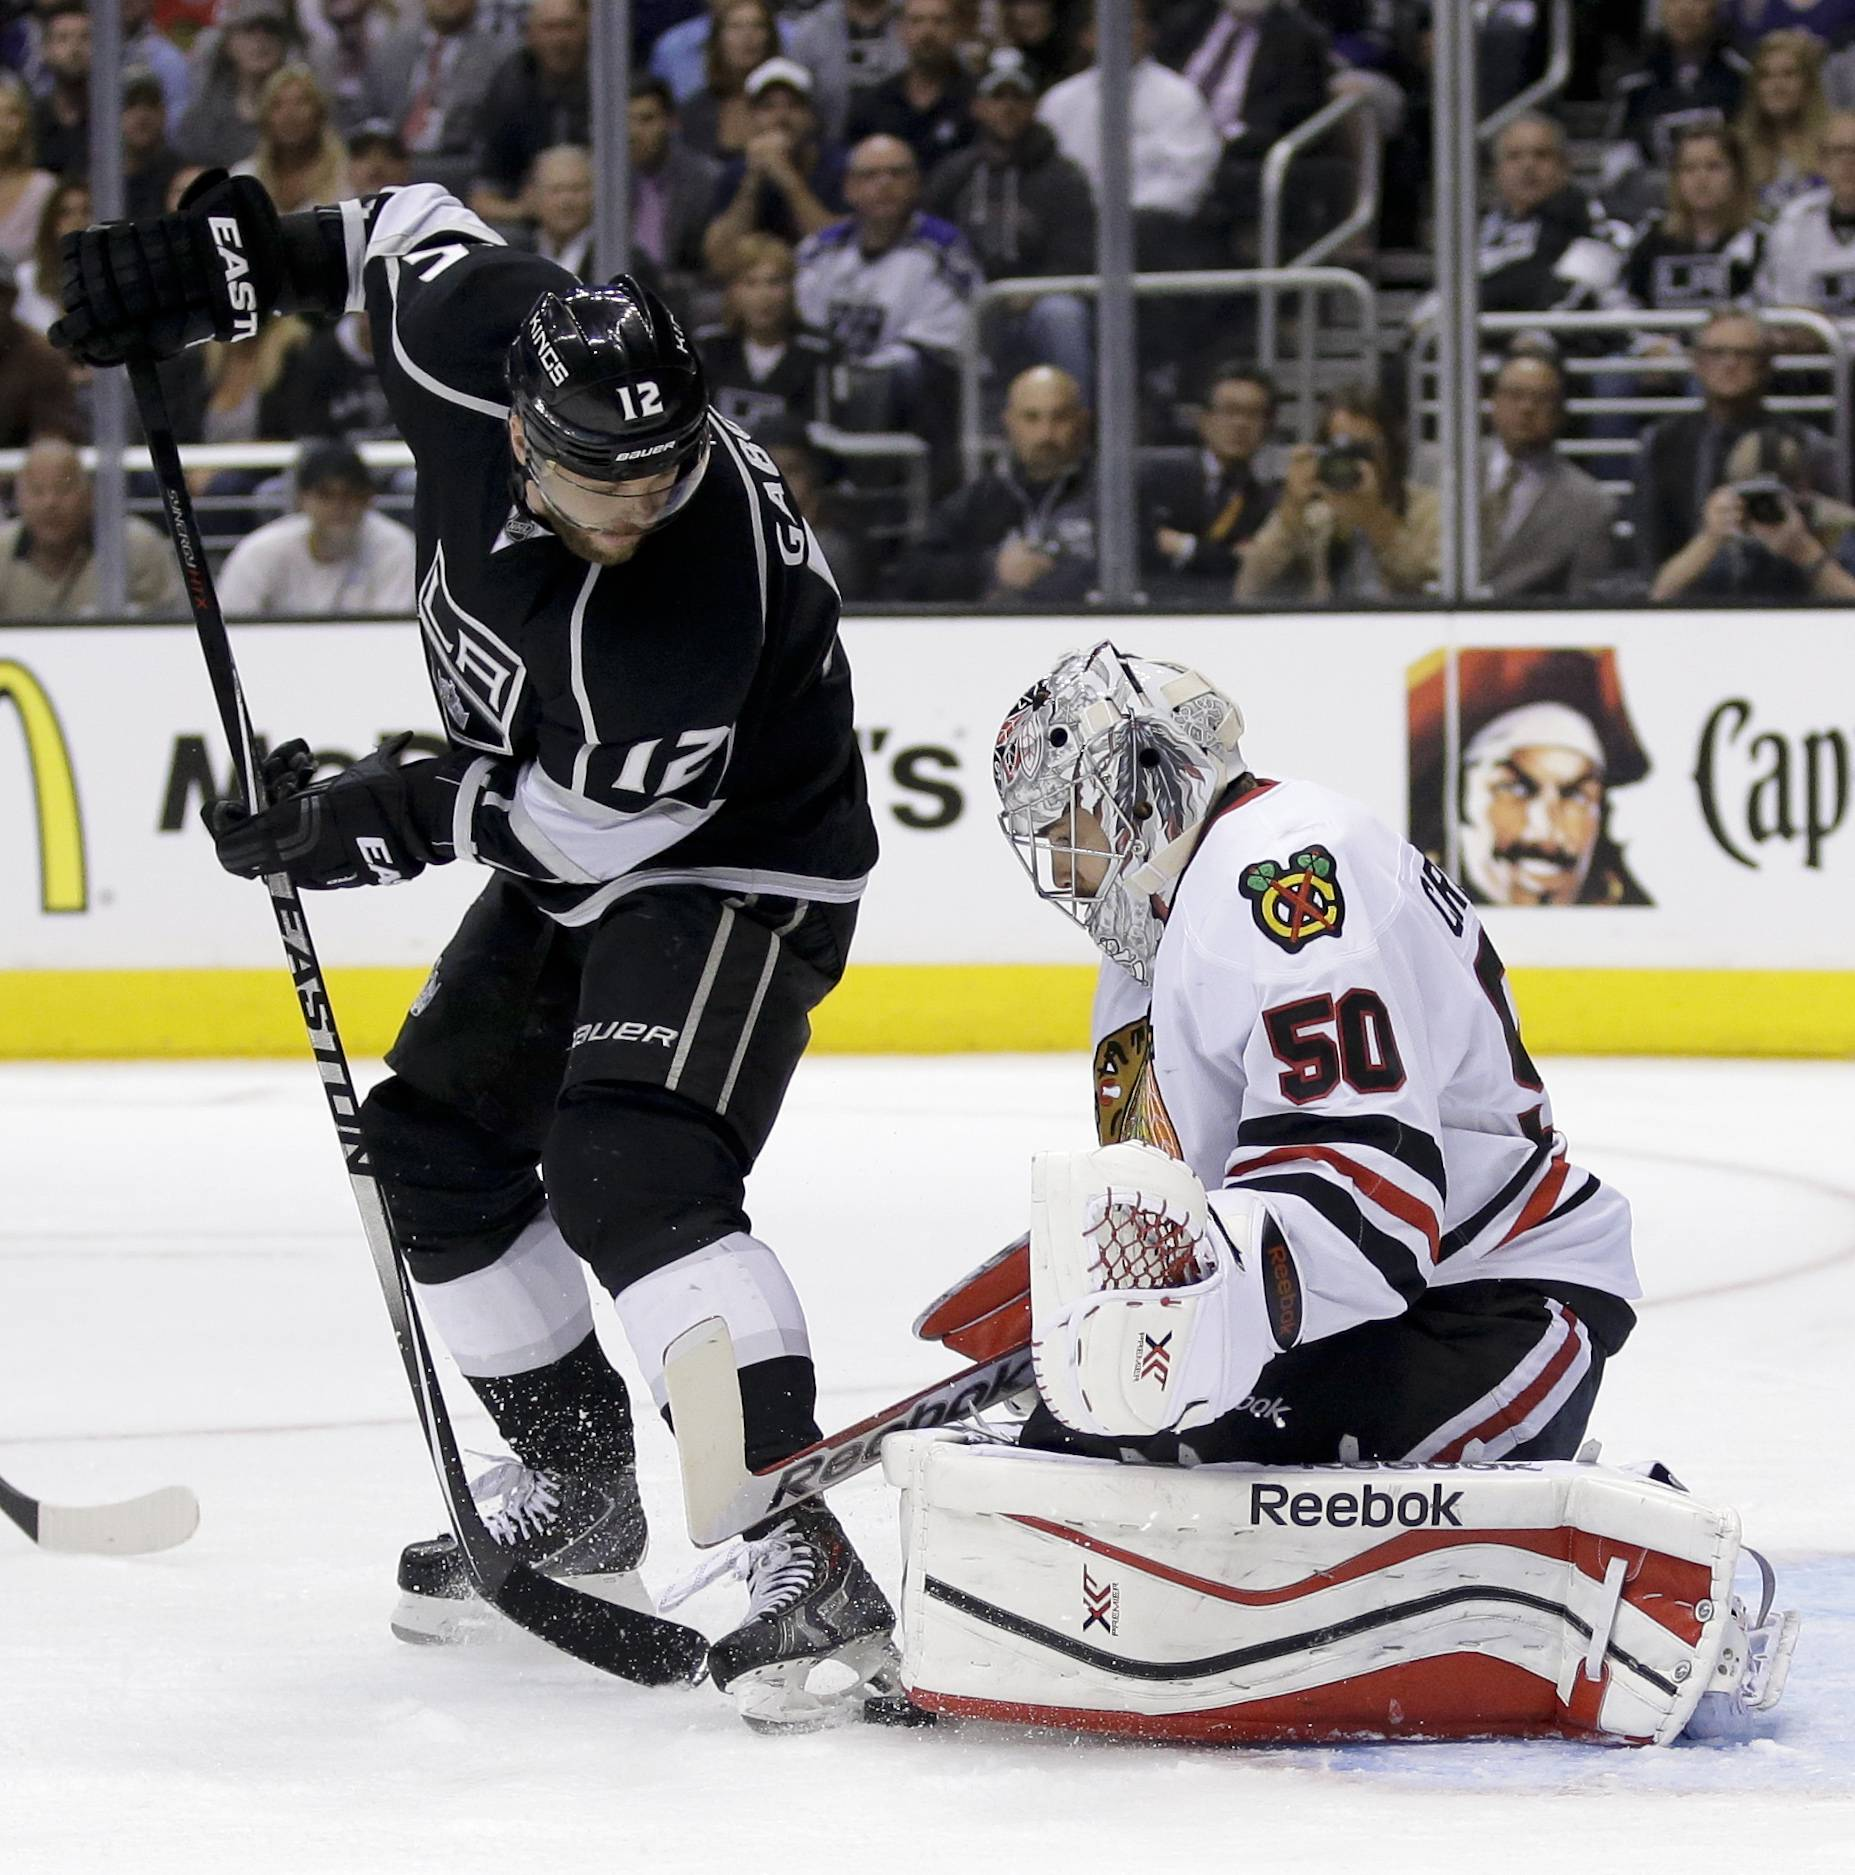 Chicago Blackhawks goalie Corey Crawford, right, blocks a shot by Los Angeles Kings right wing Marian Gaborik during the second period.